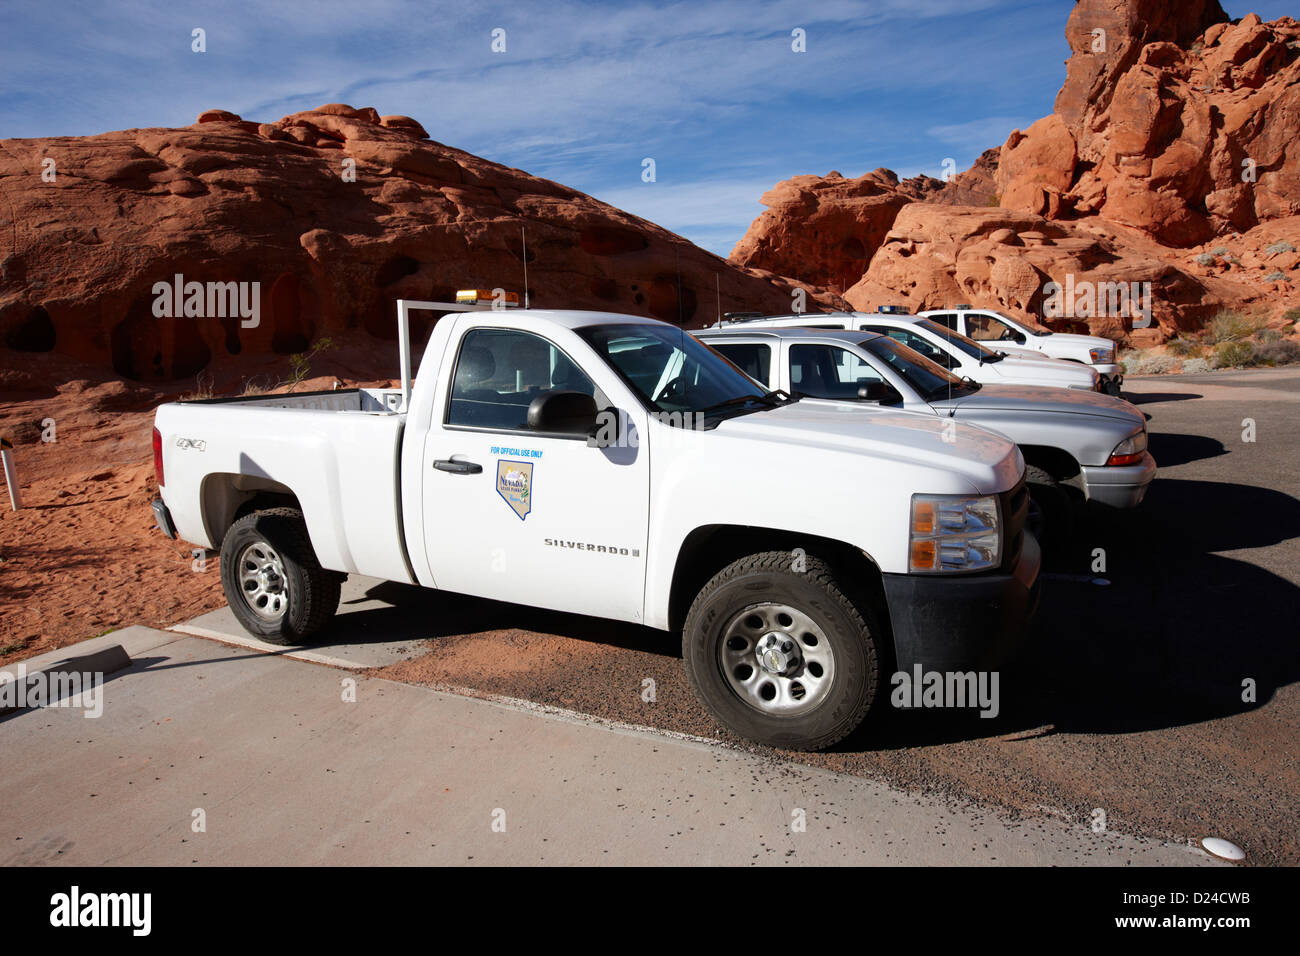 state park ranger vehicles at the valley of fire state park nevada usa - Stock Image